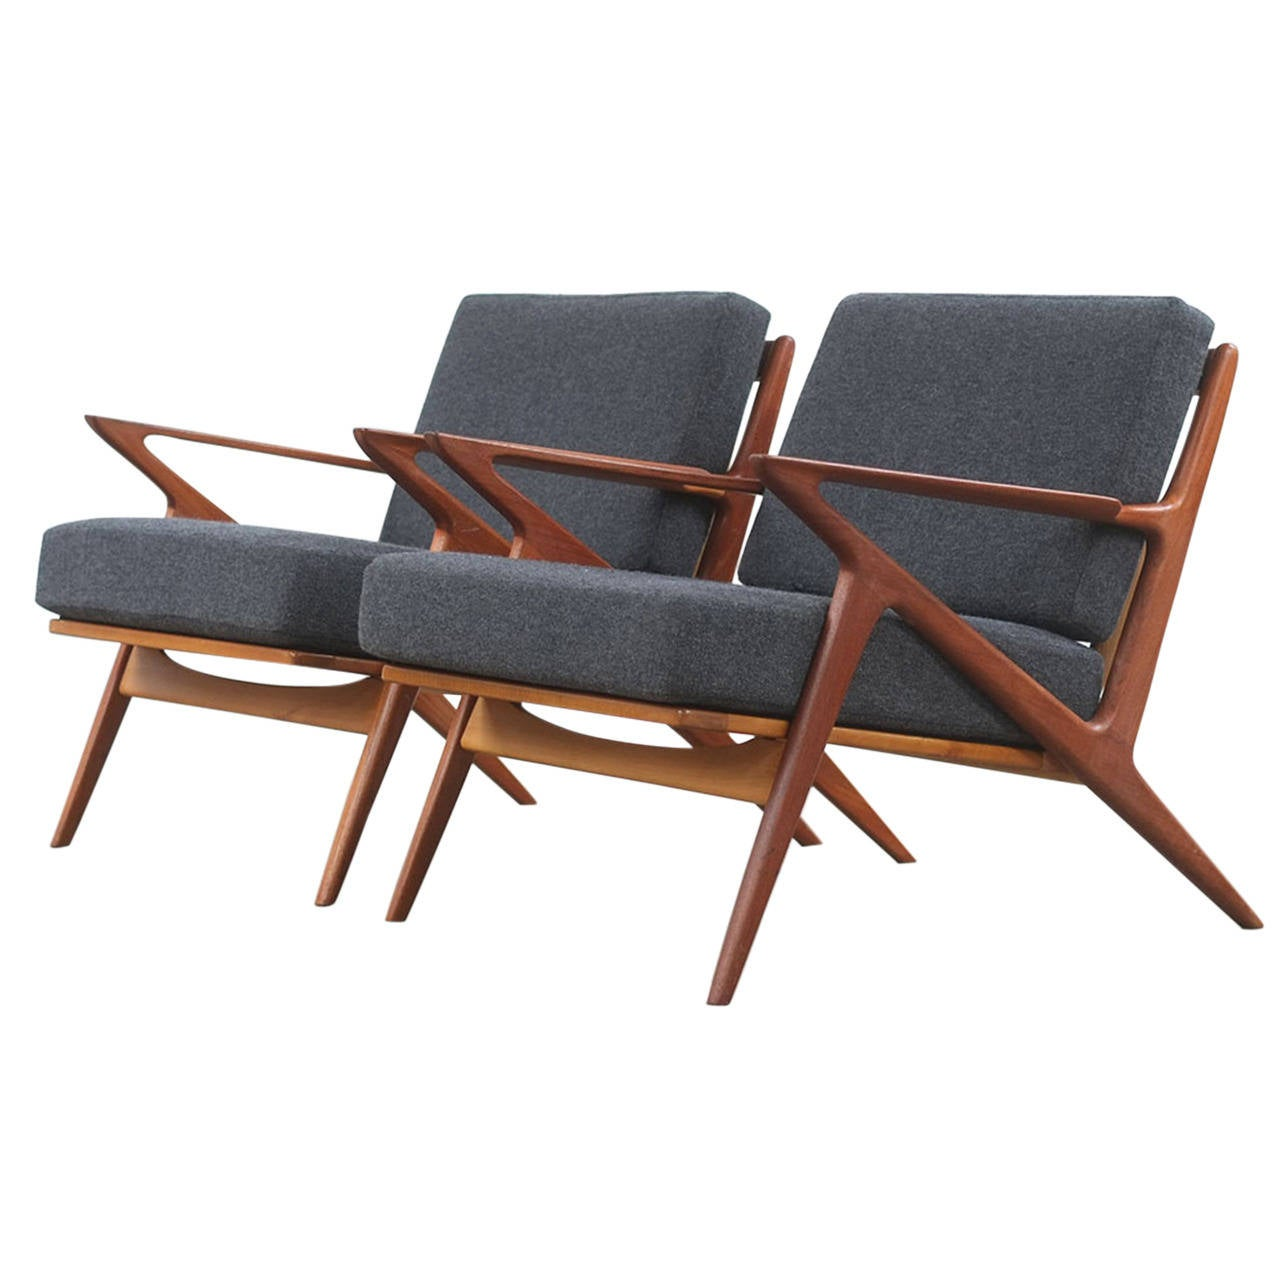 Poul jensen z chairs at 1stdibs for Poul jensen z chair